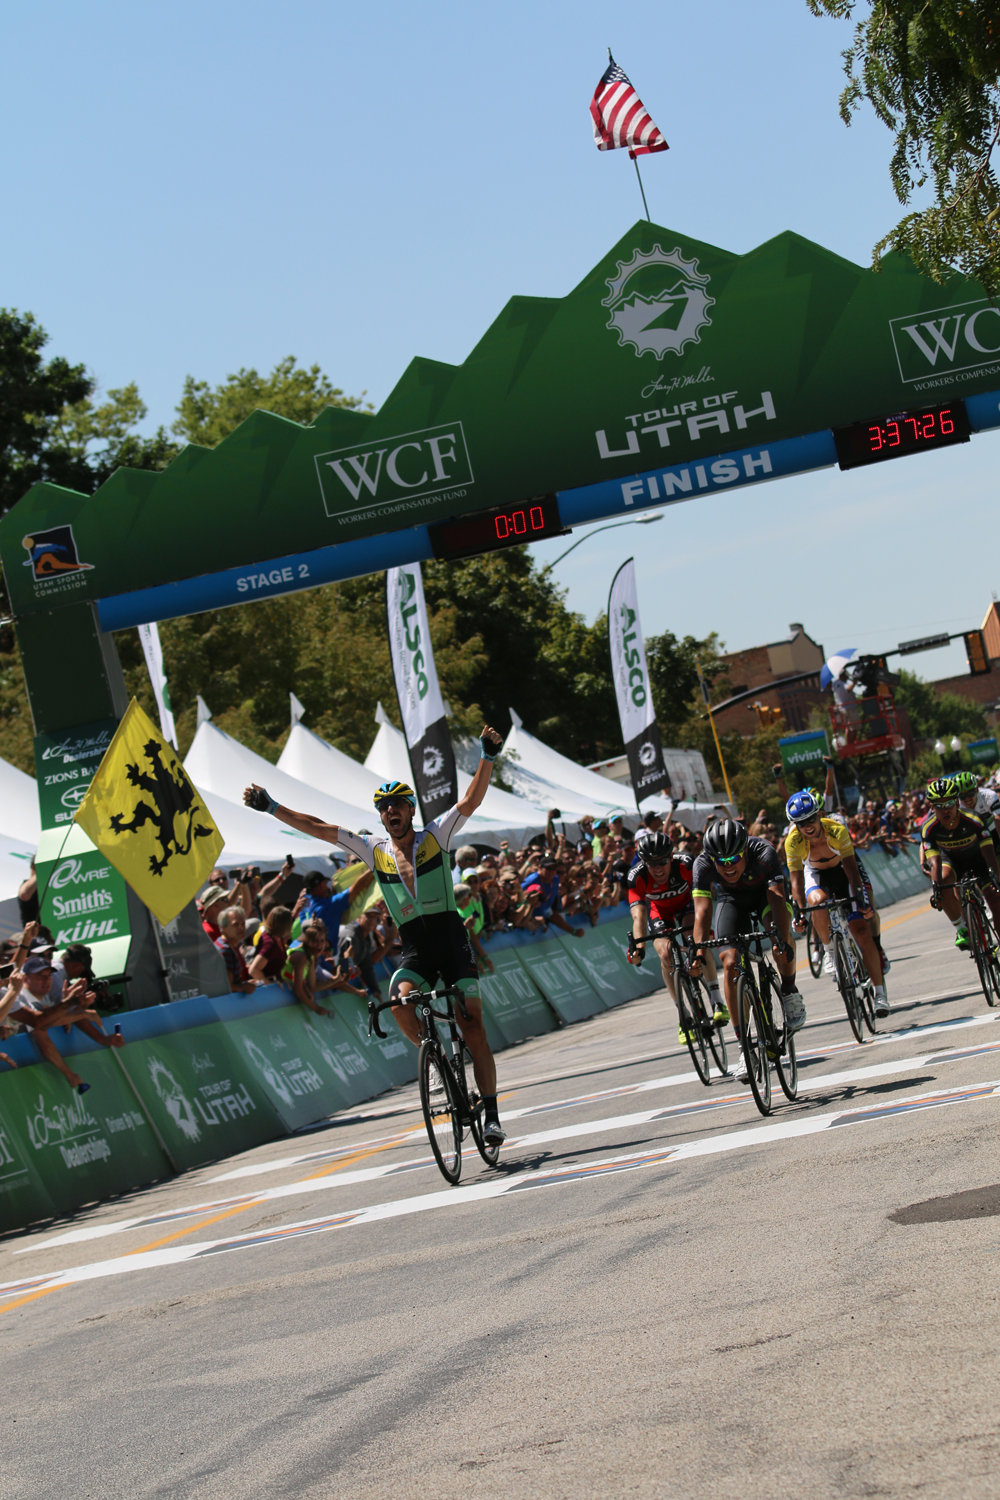 Jure Kocjan Wins Stage 2 of the 2015 Tour of Utah in a sprint finish. Photo by Dave Iltis